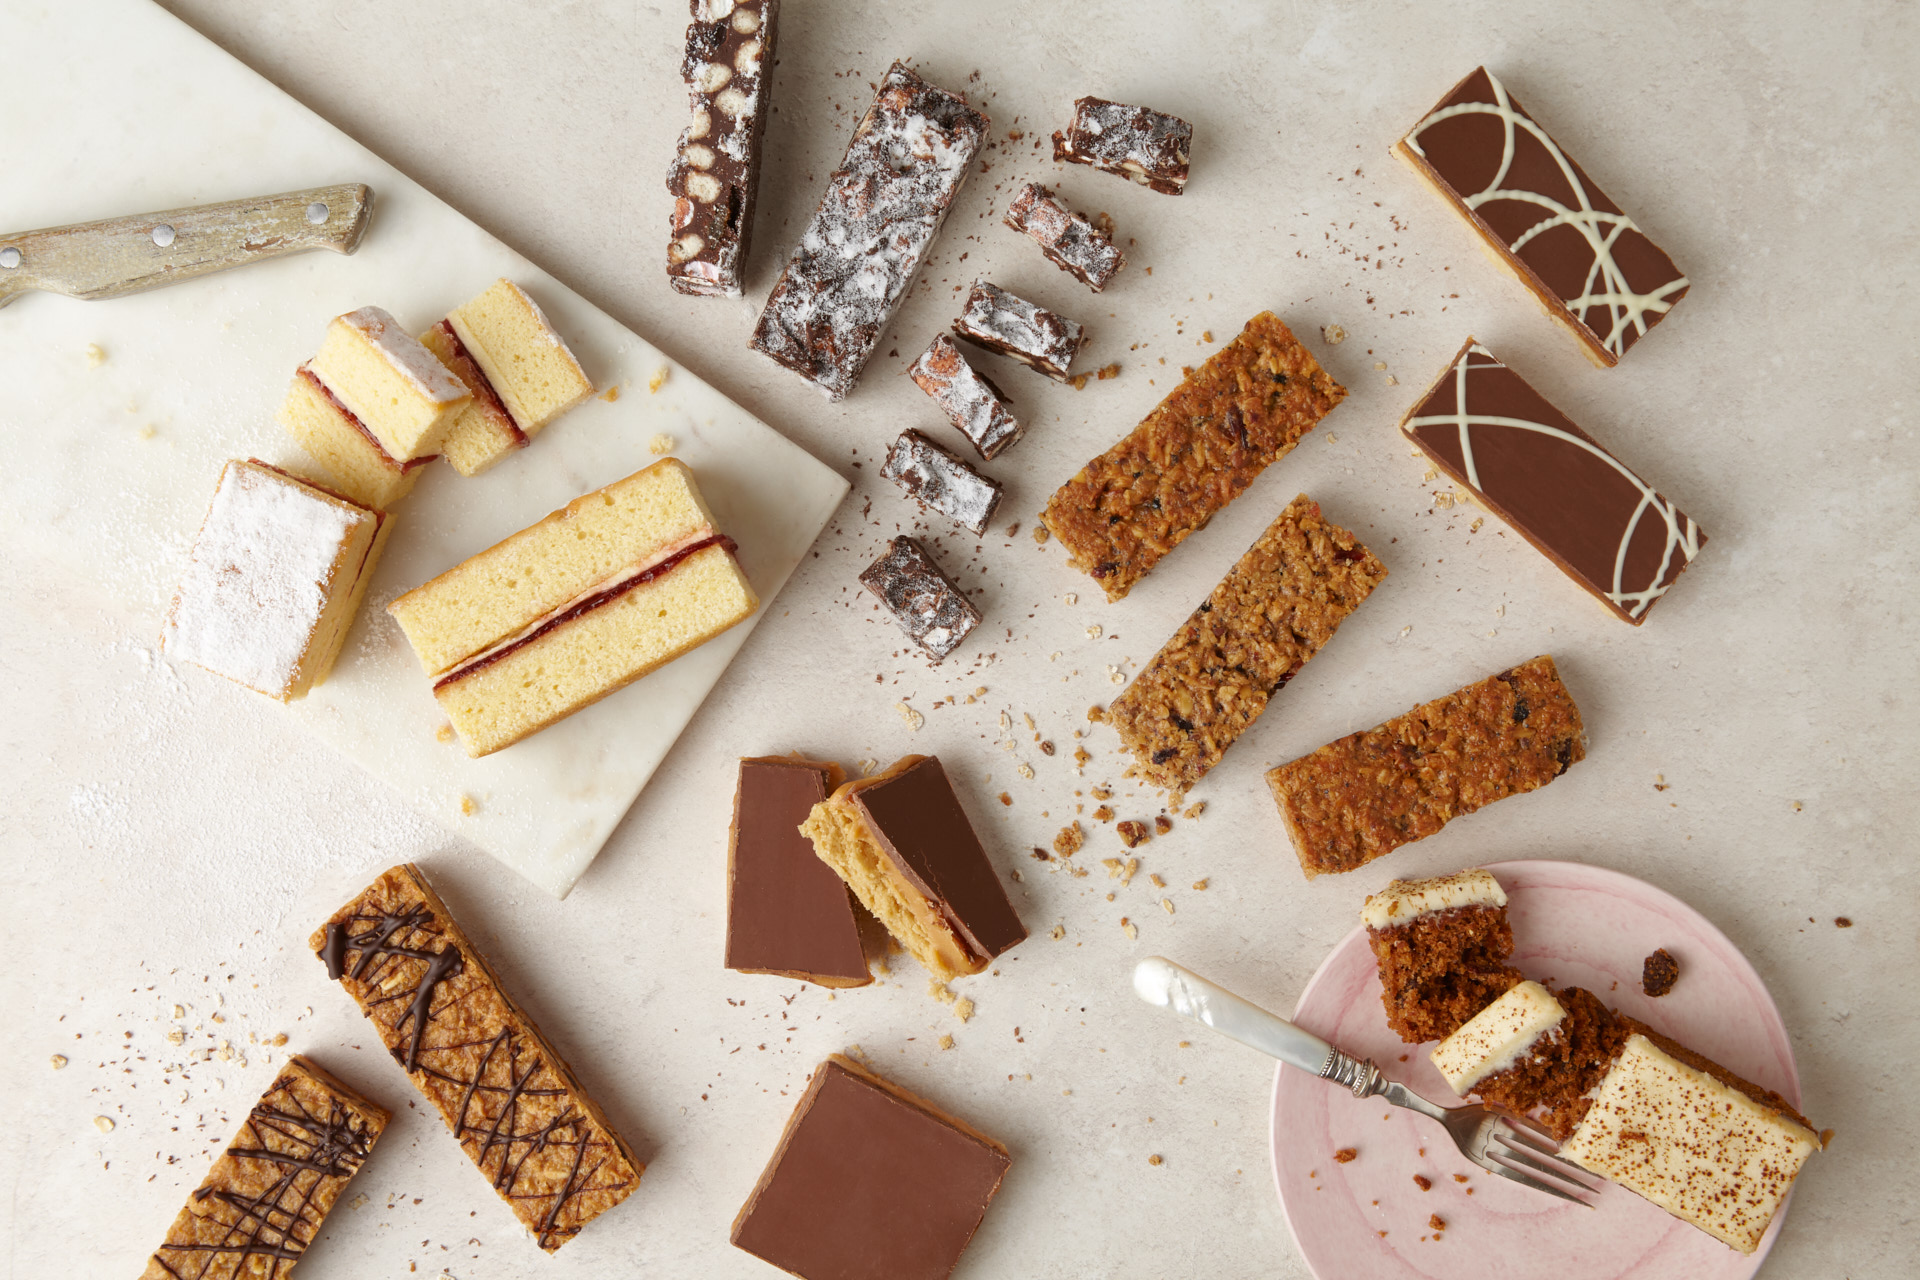 A wide range of snack bars, healthy and indulgent park cakes bakery